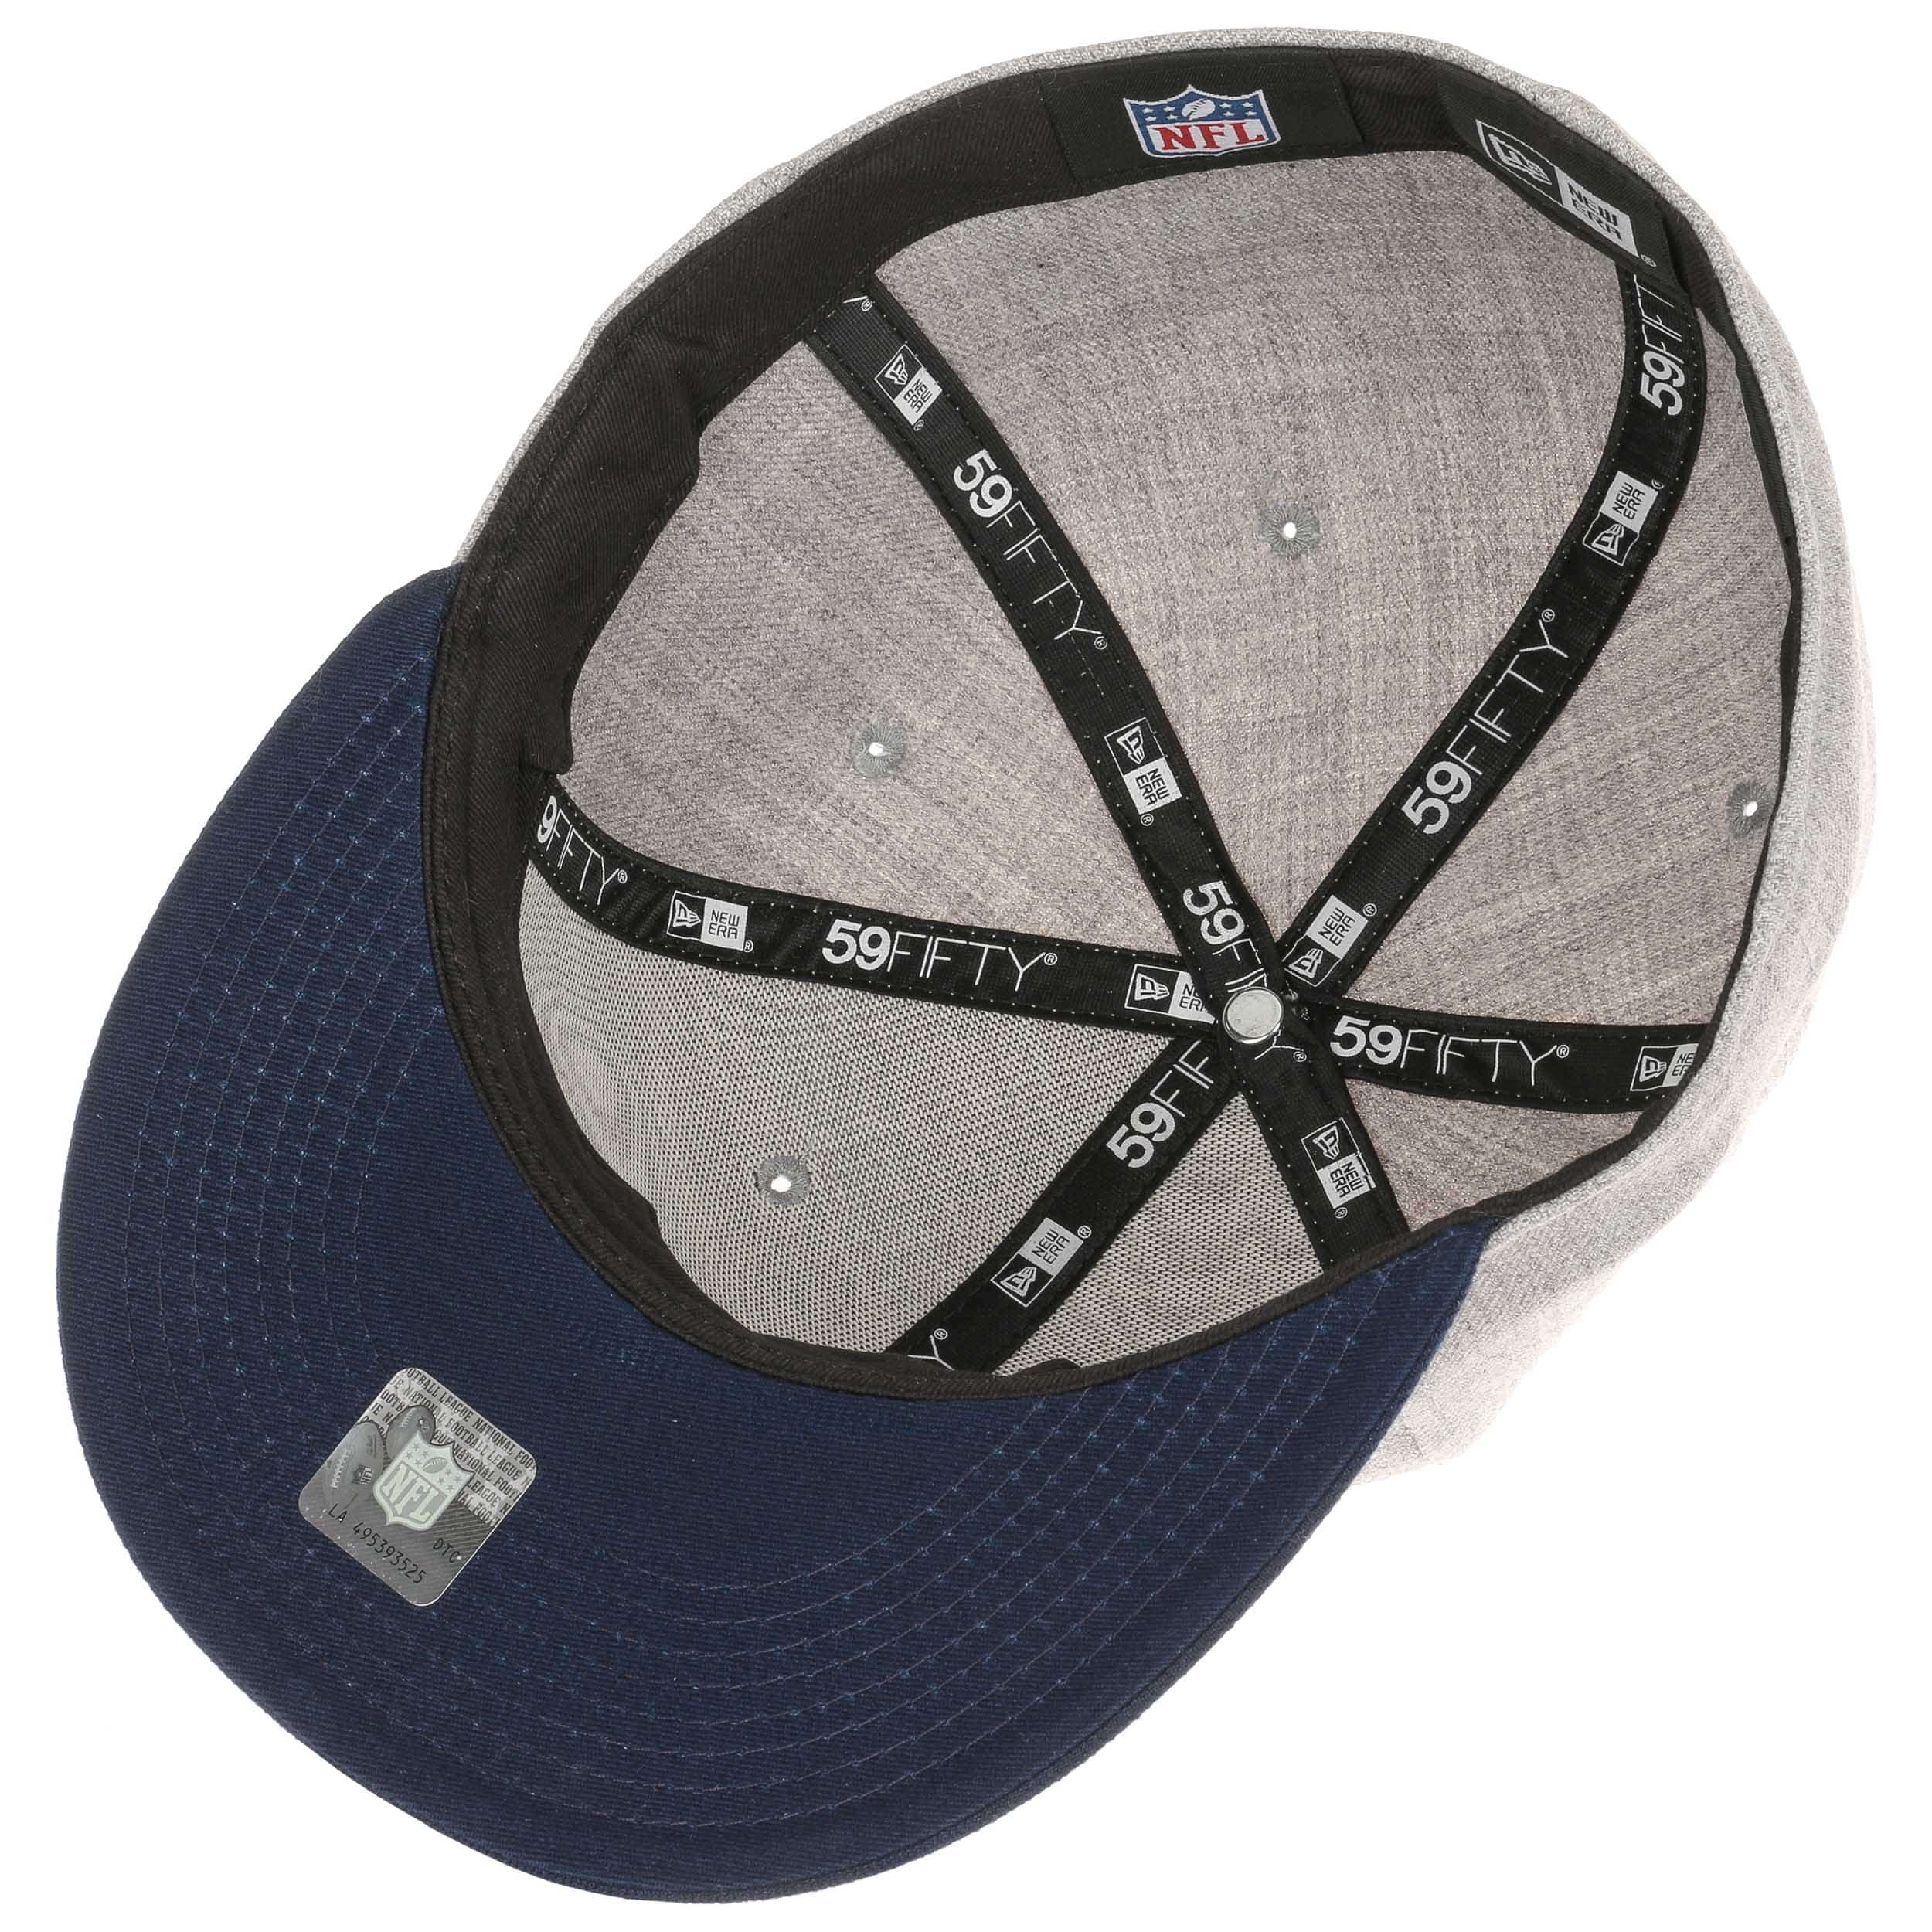 finest selection fd70e 89d3d ... clearance 59fifty new england patriots cap by new era grey 2 db31c 38b13